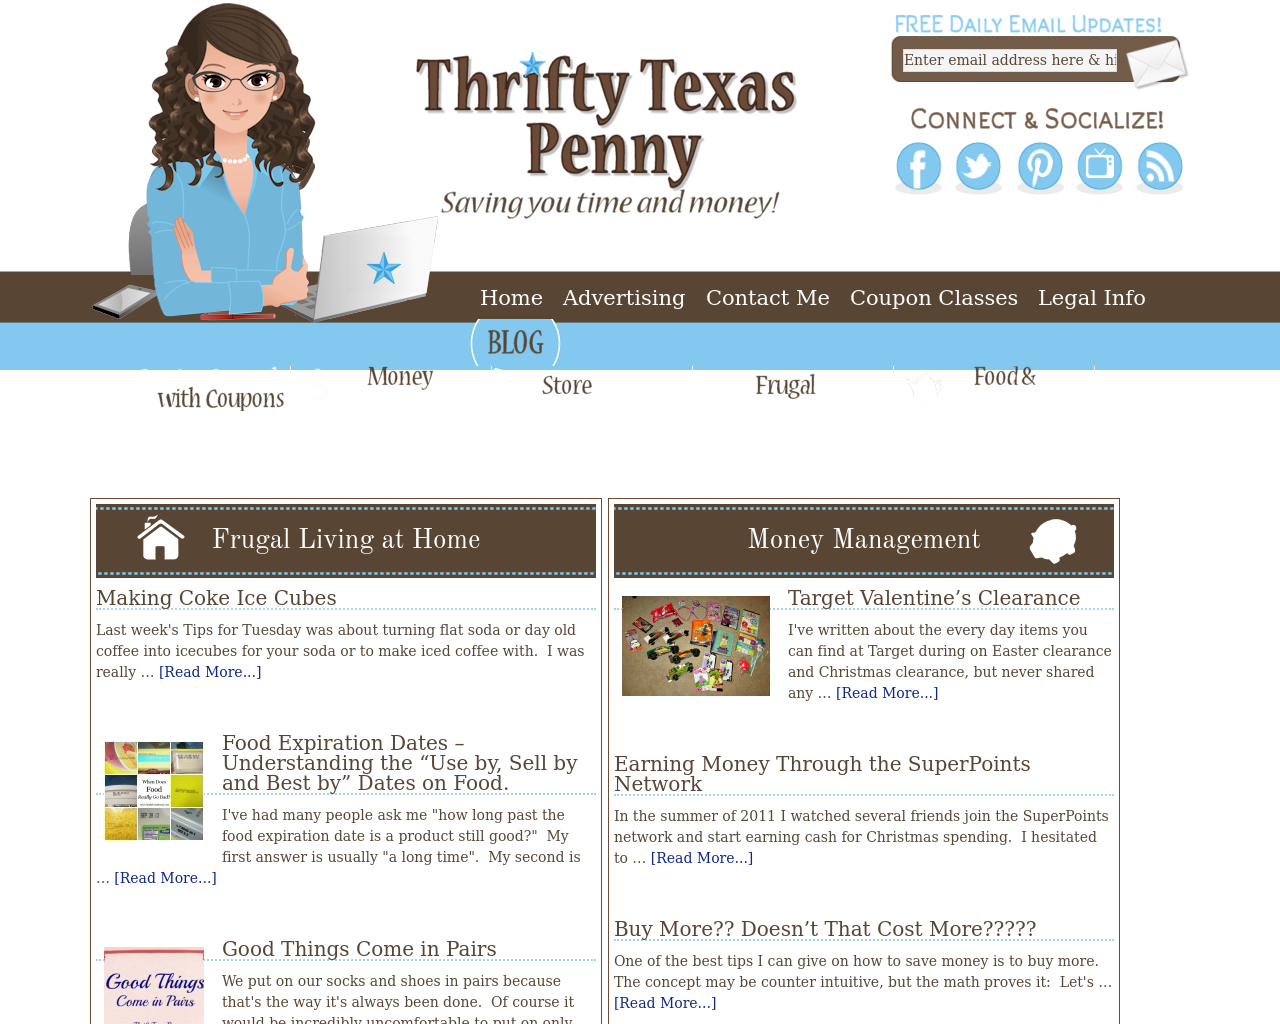 Thrifty-Texas-Penny-Advertising-Reviews-Pricing